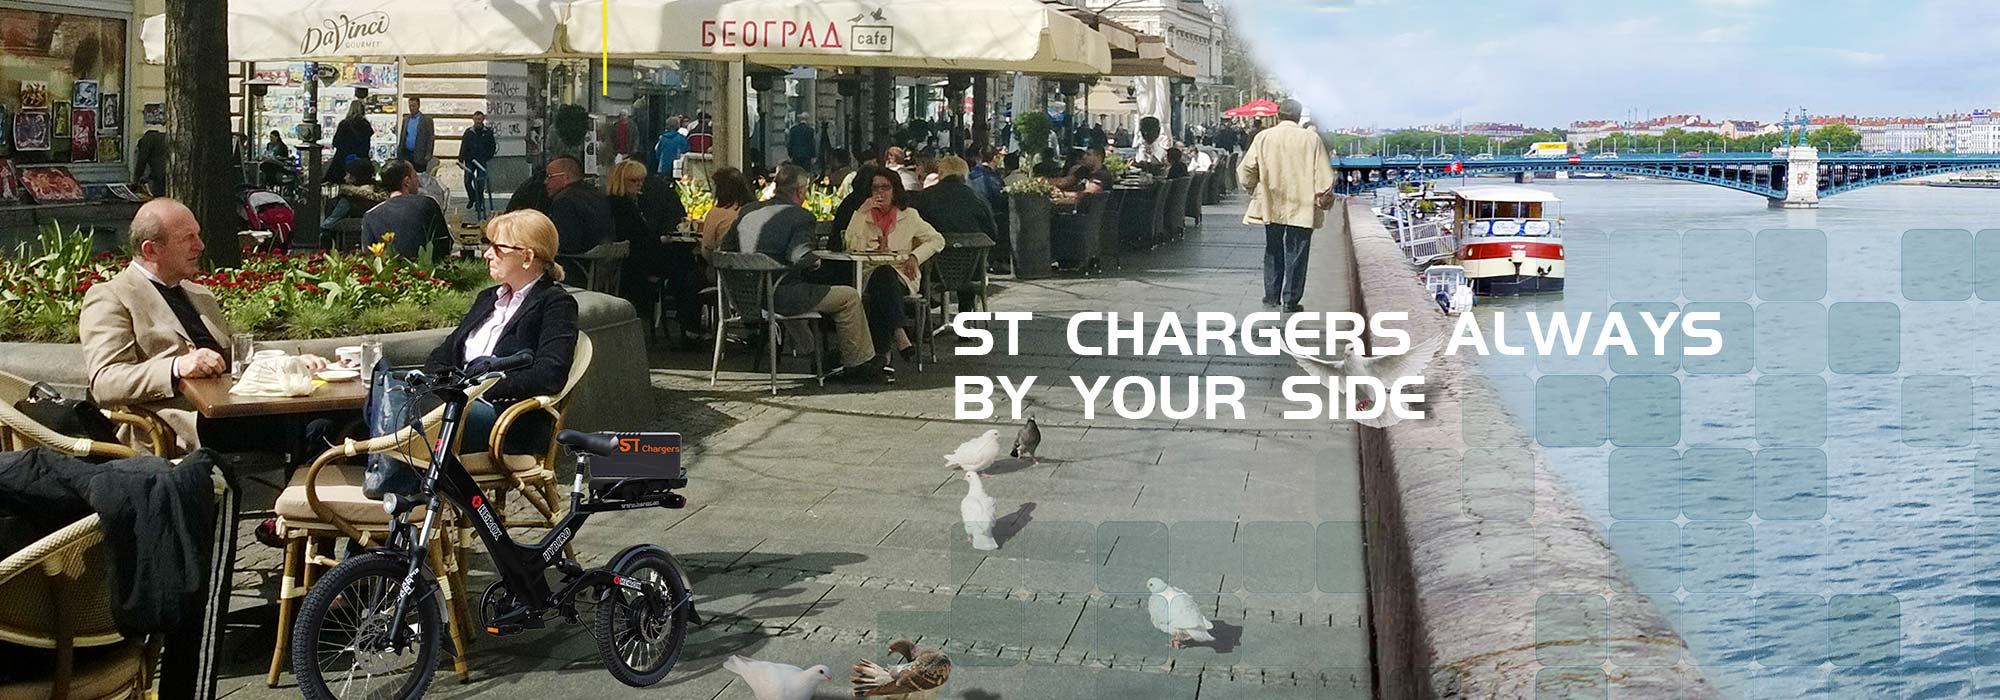 ST chargers